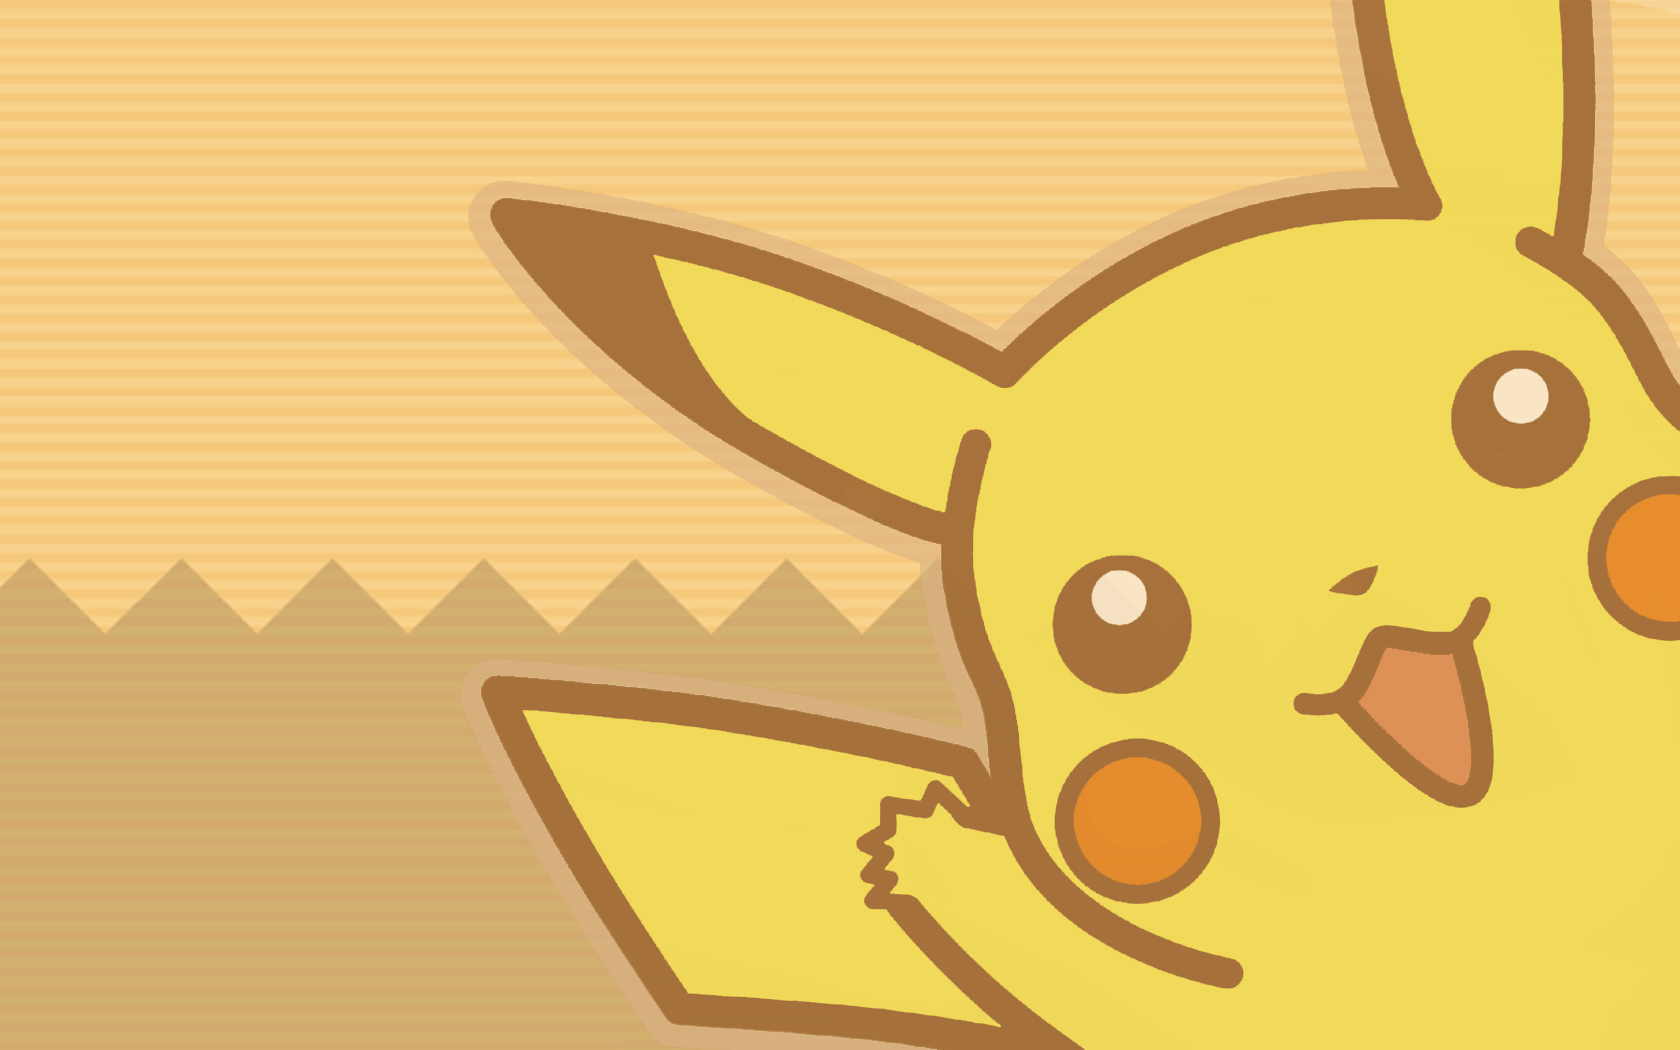 Pikachu Wallpapers for...